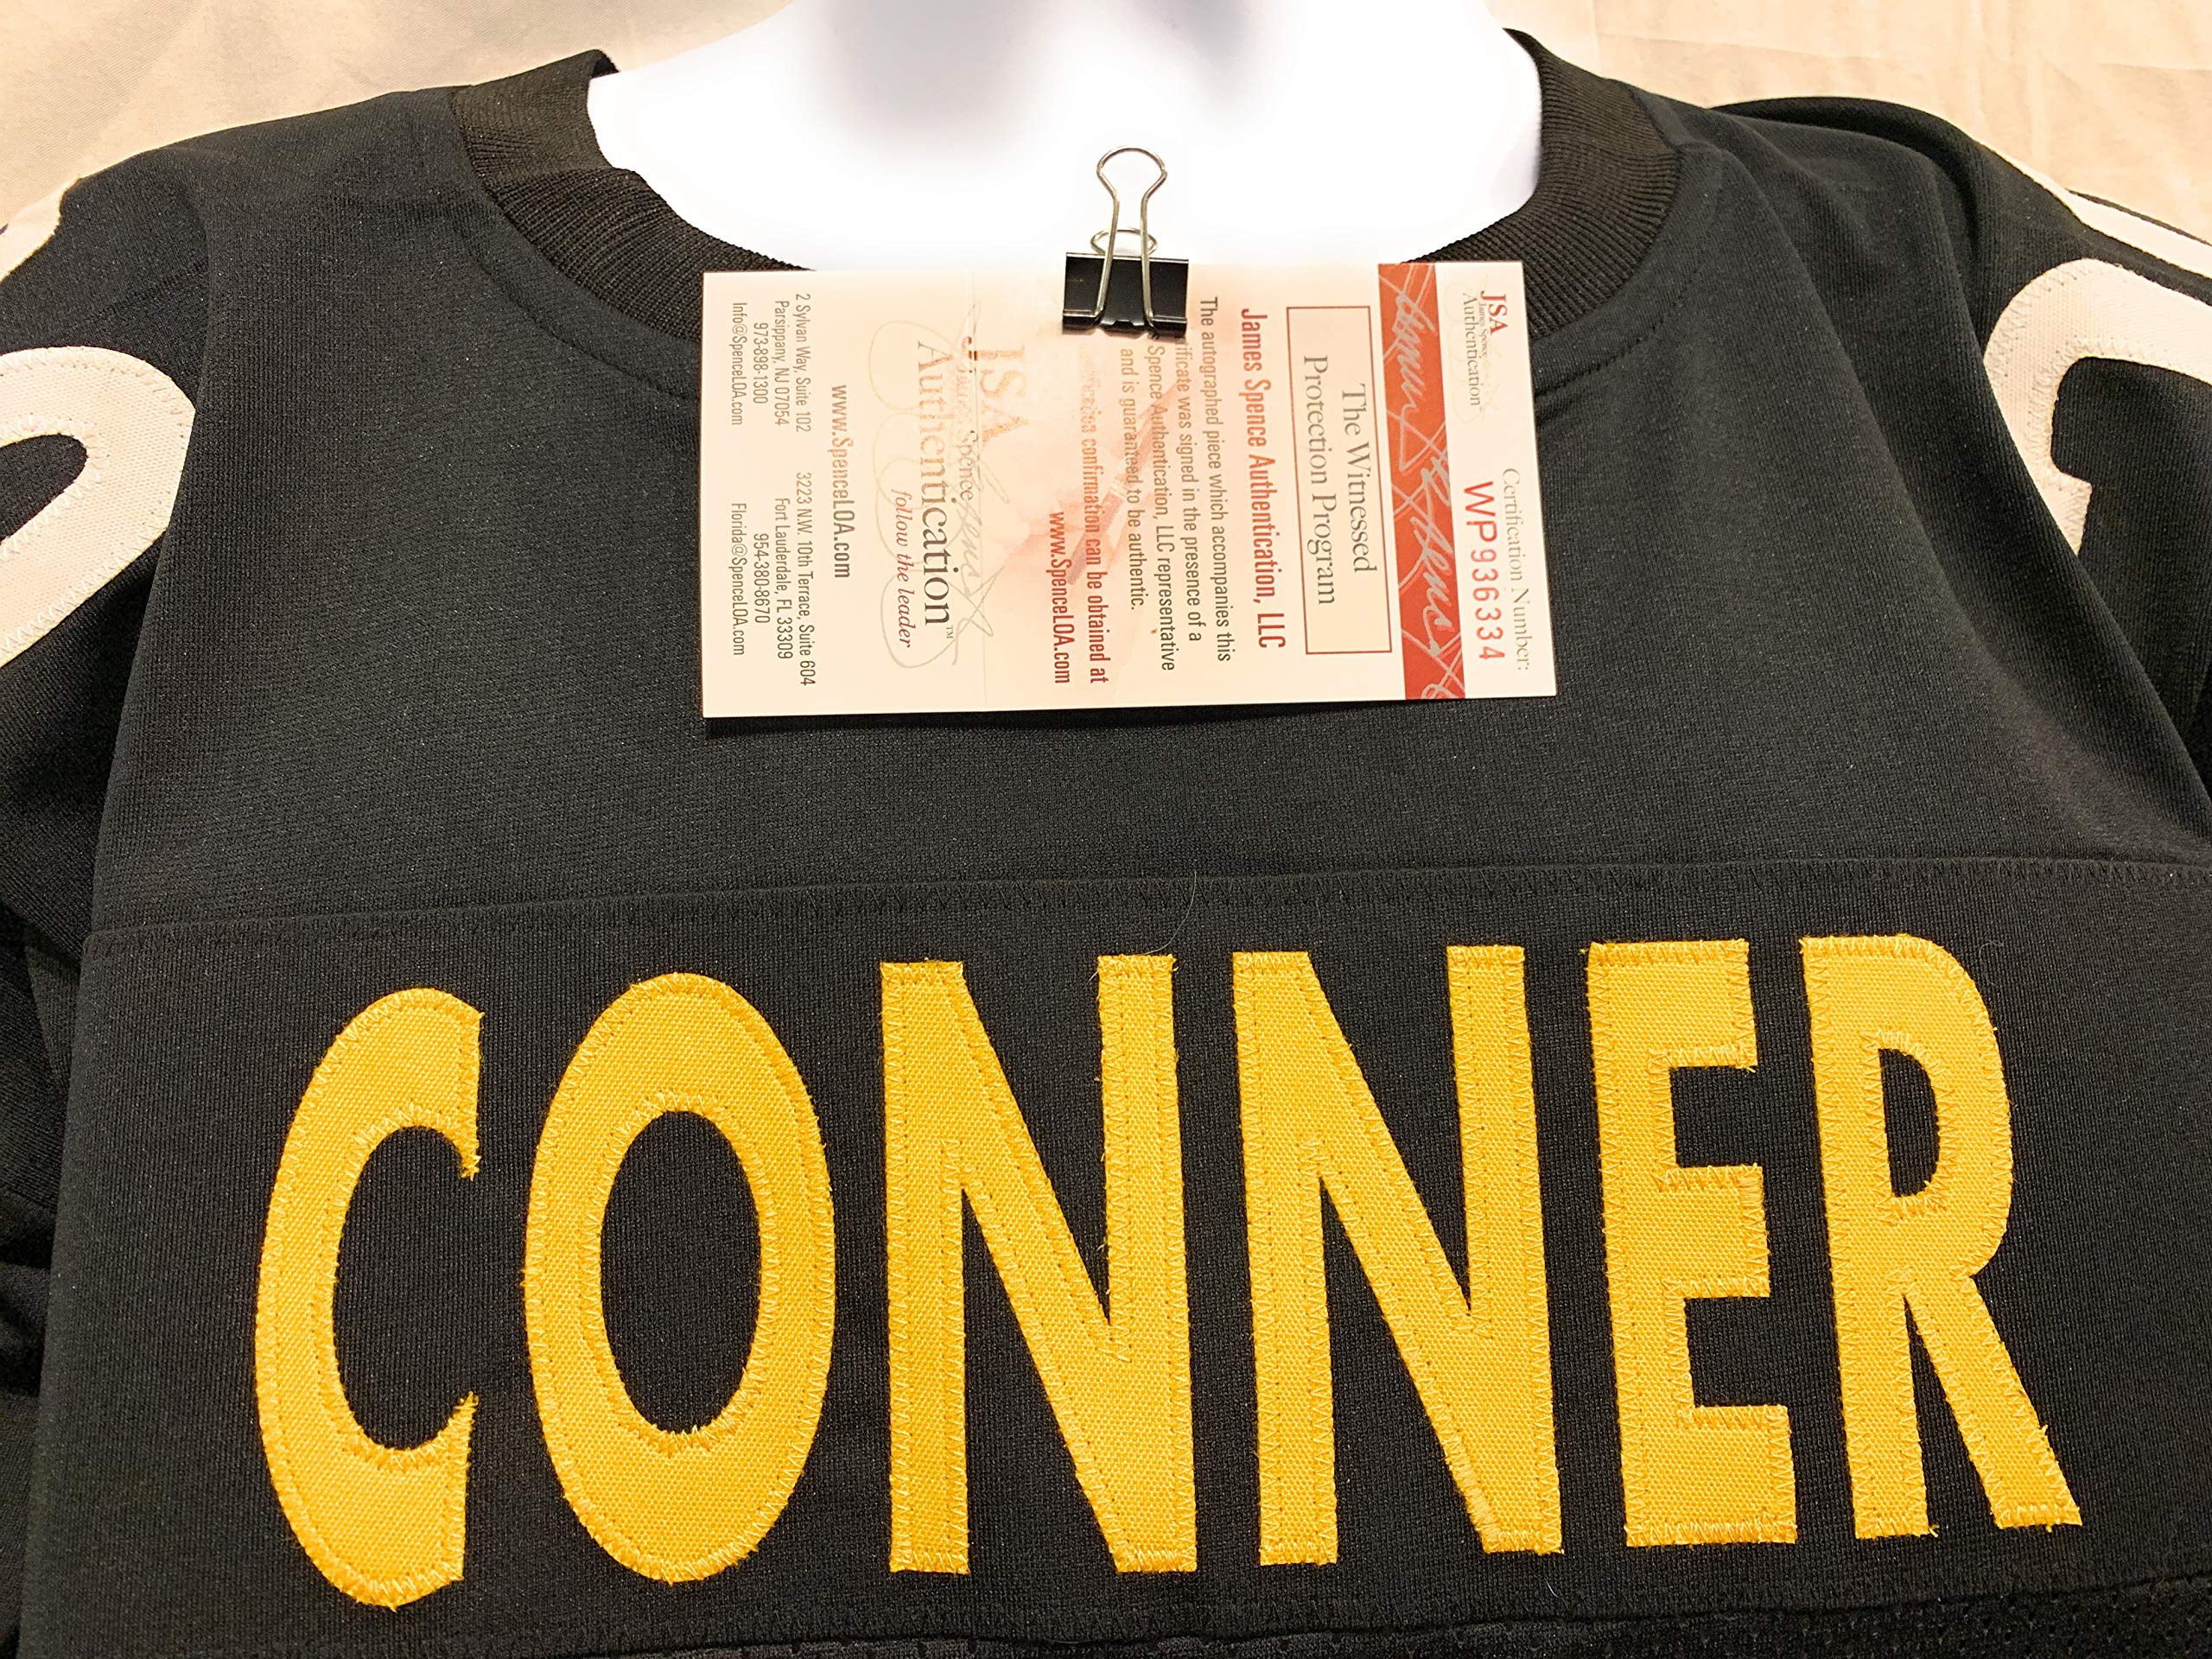 James Conner Pittsburgh Steelers Signed Autograph Black Custom Jersey JSA Witnessed Certified